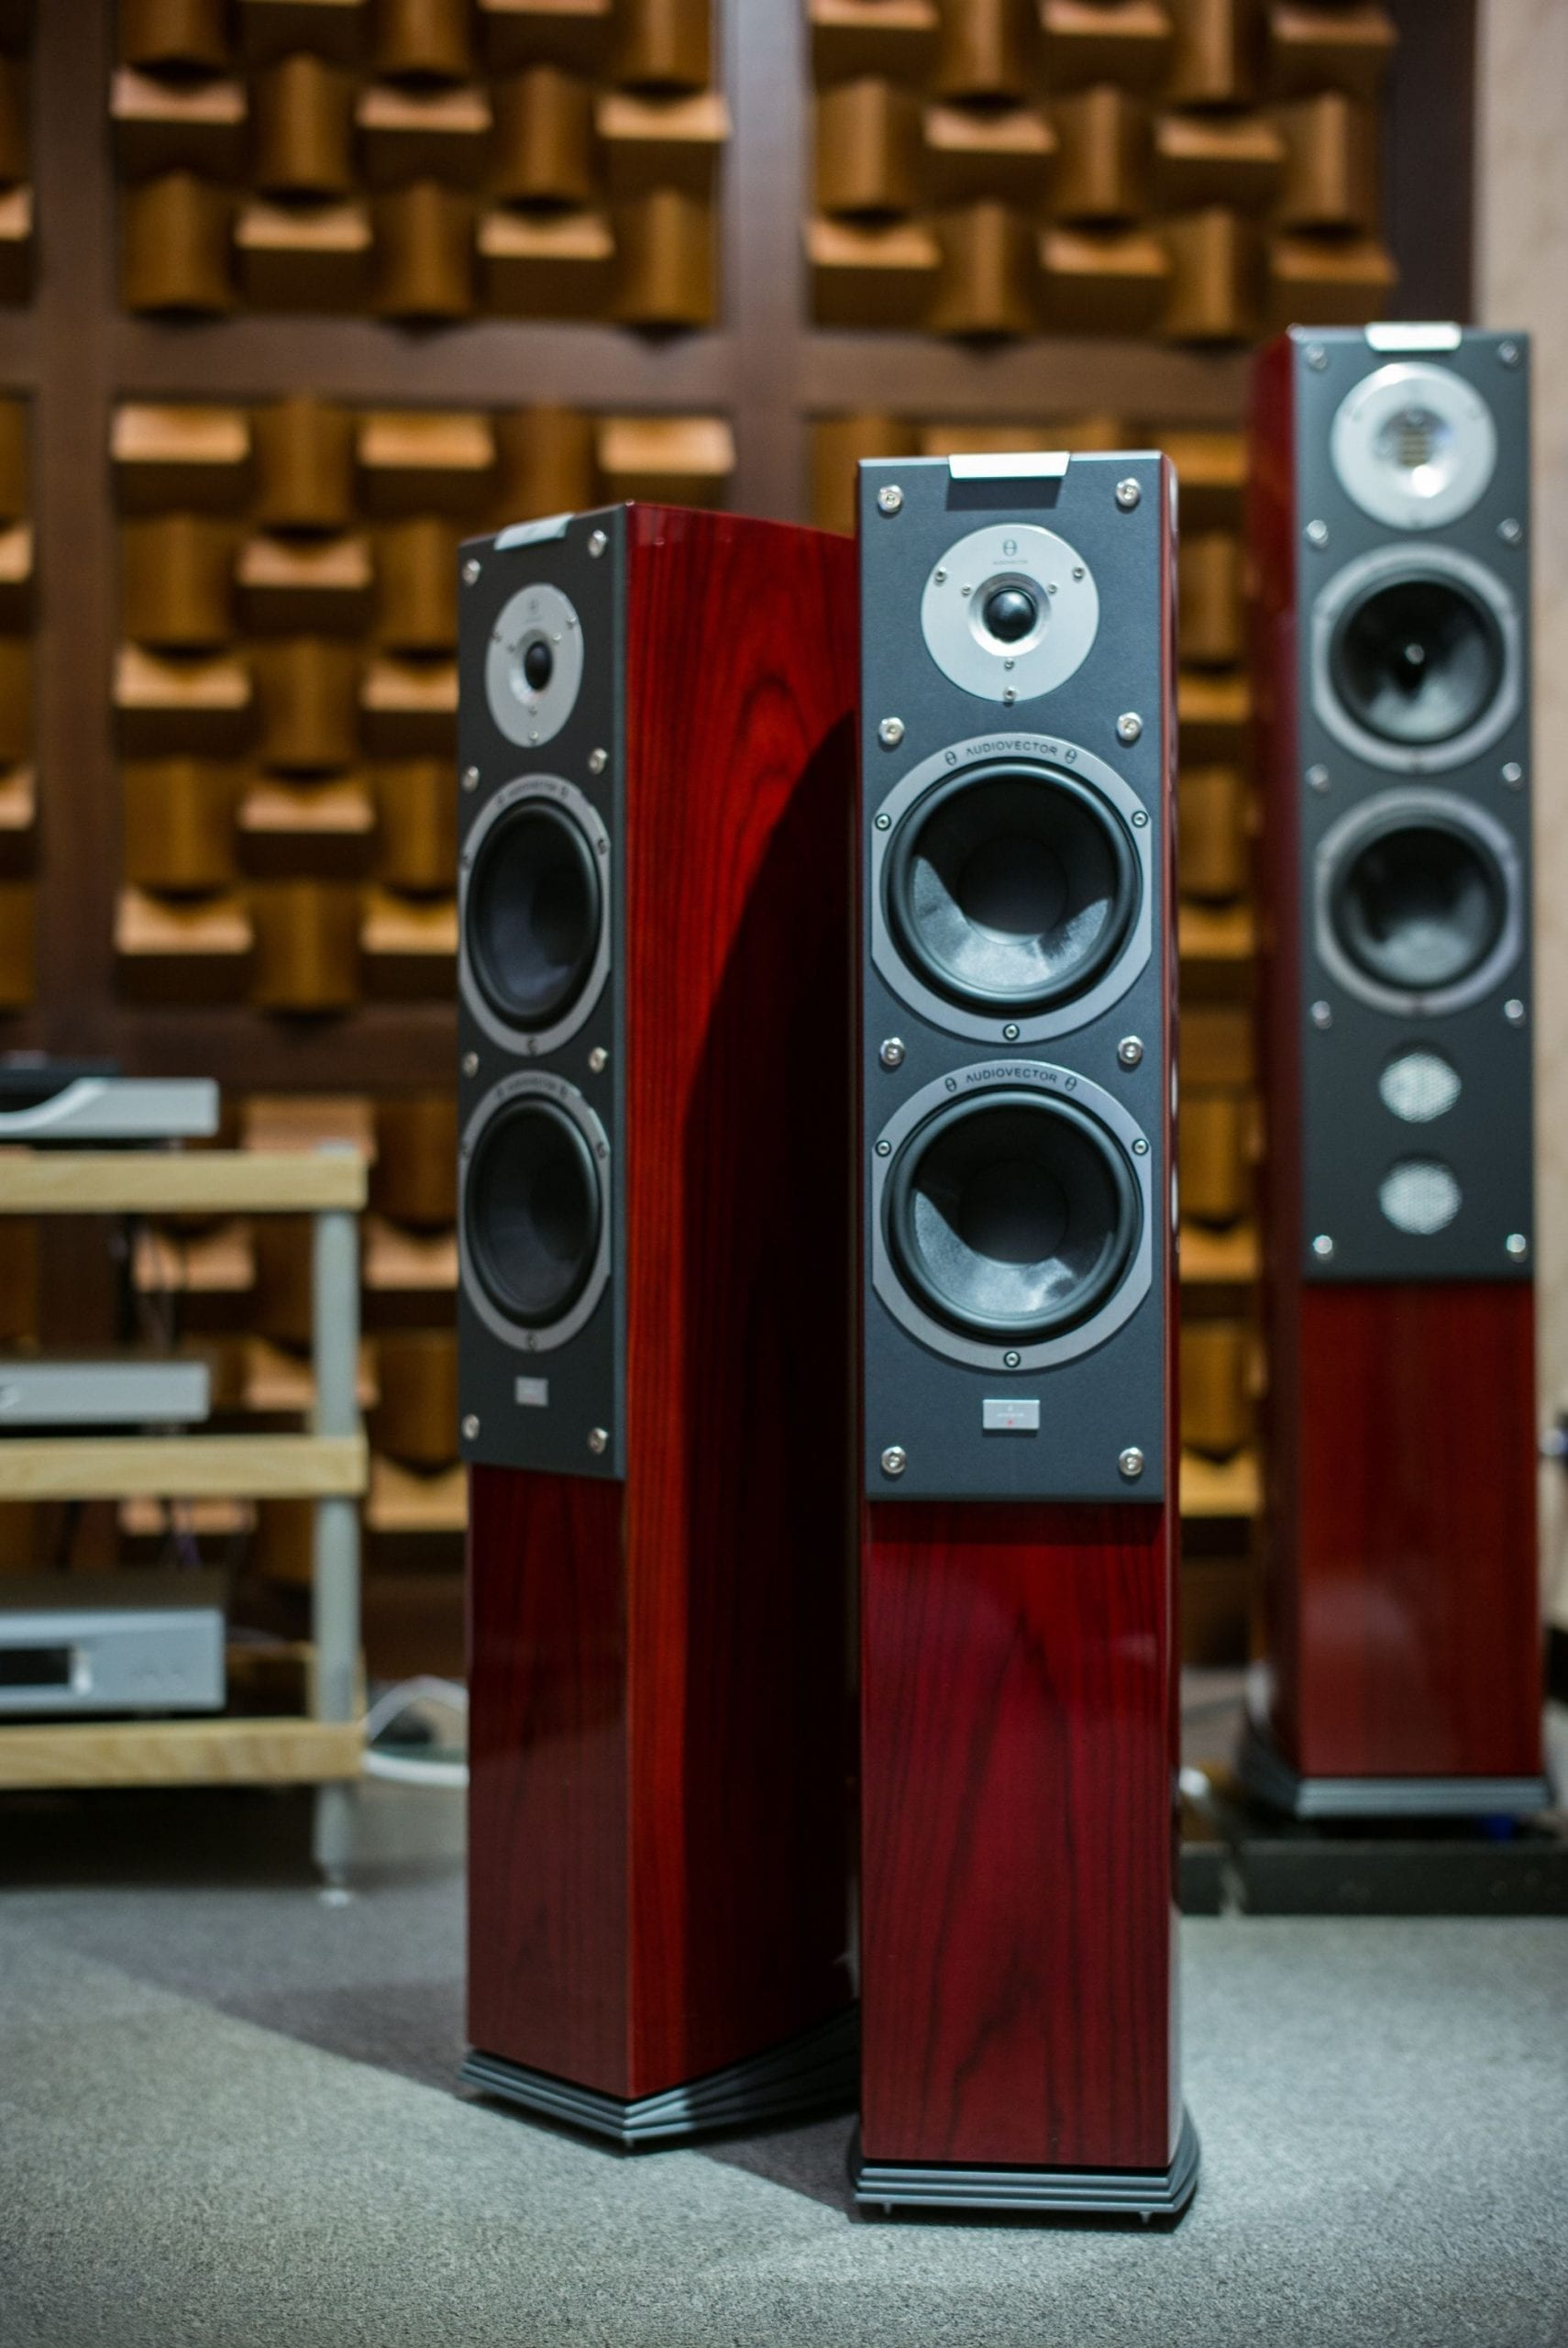 amazing set of speakers - rockvinlyrevival.com